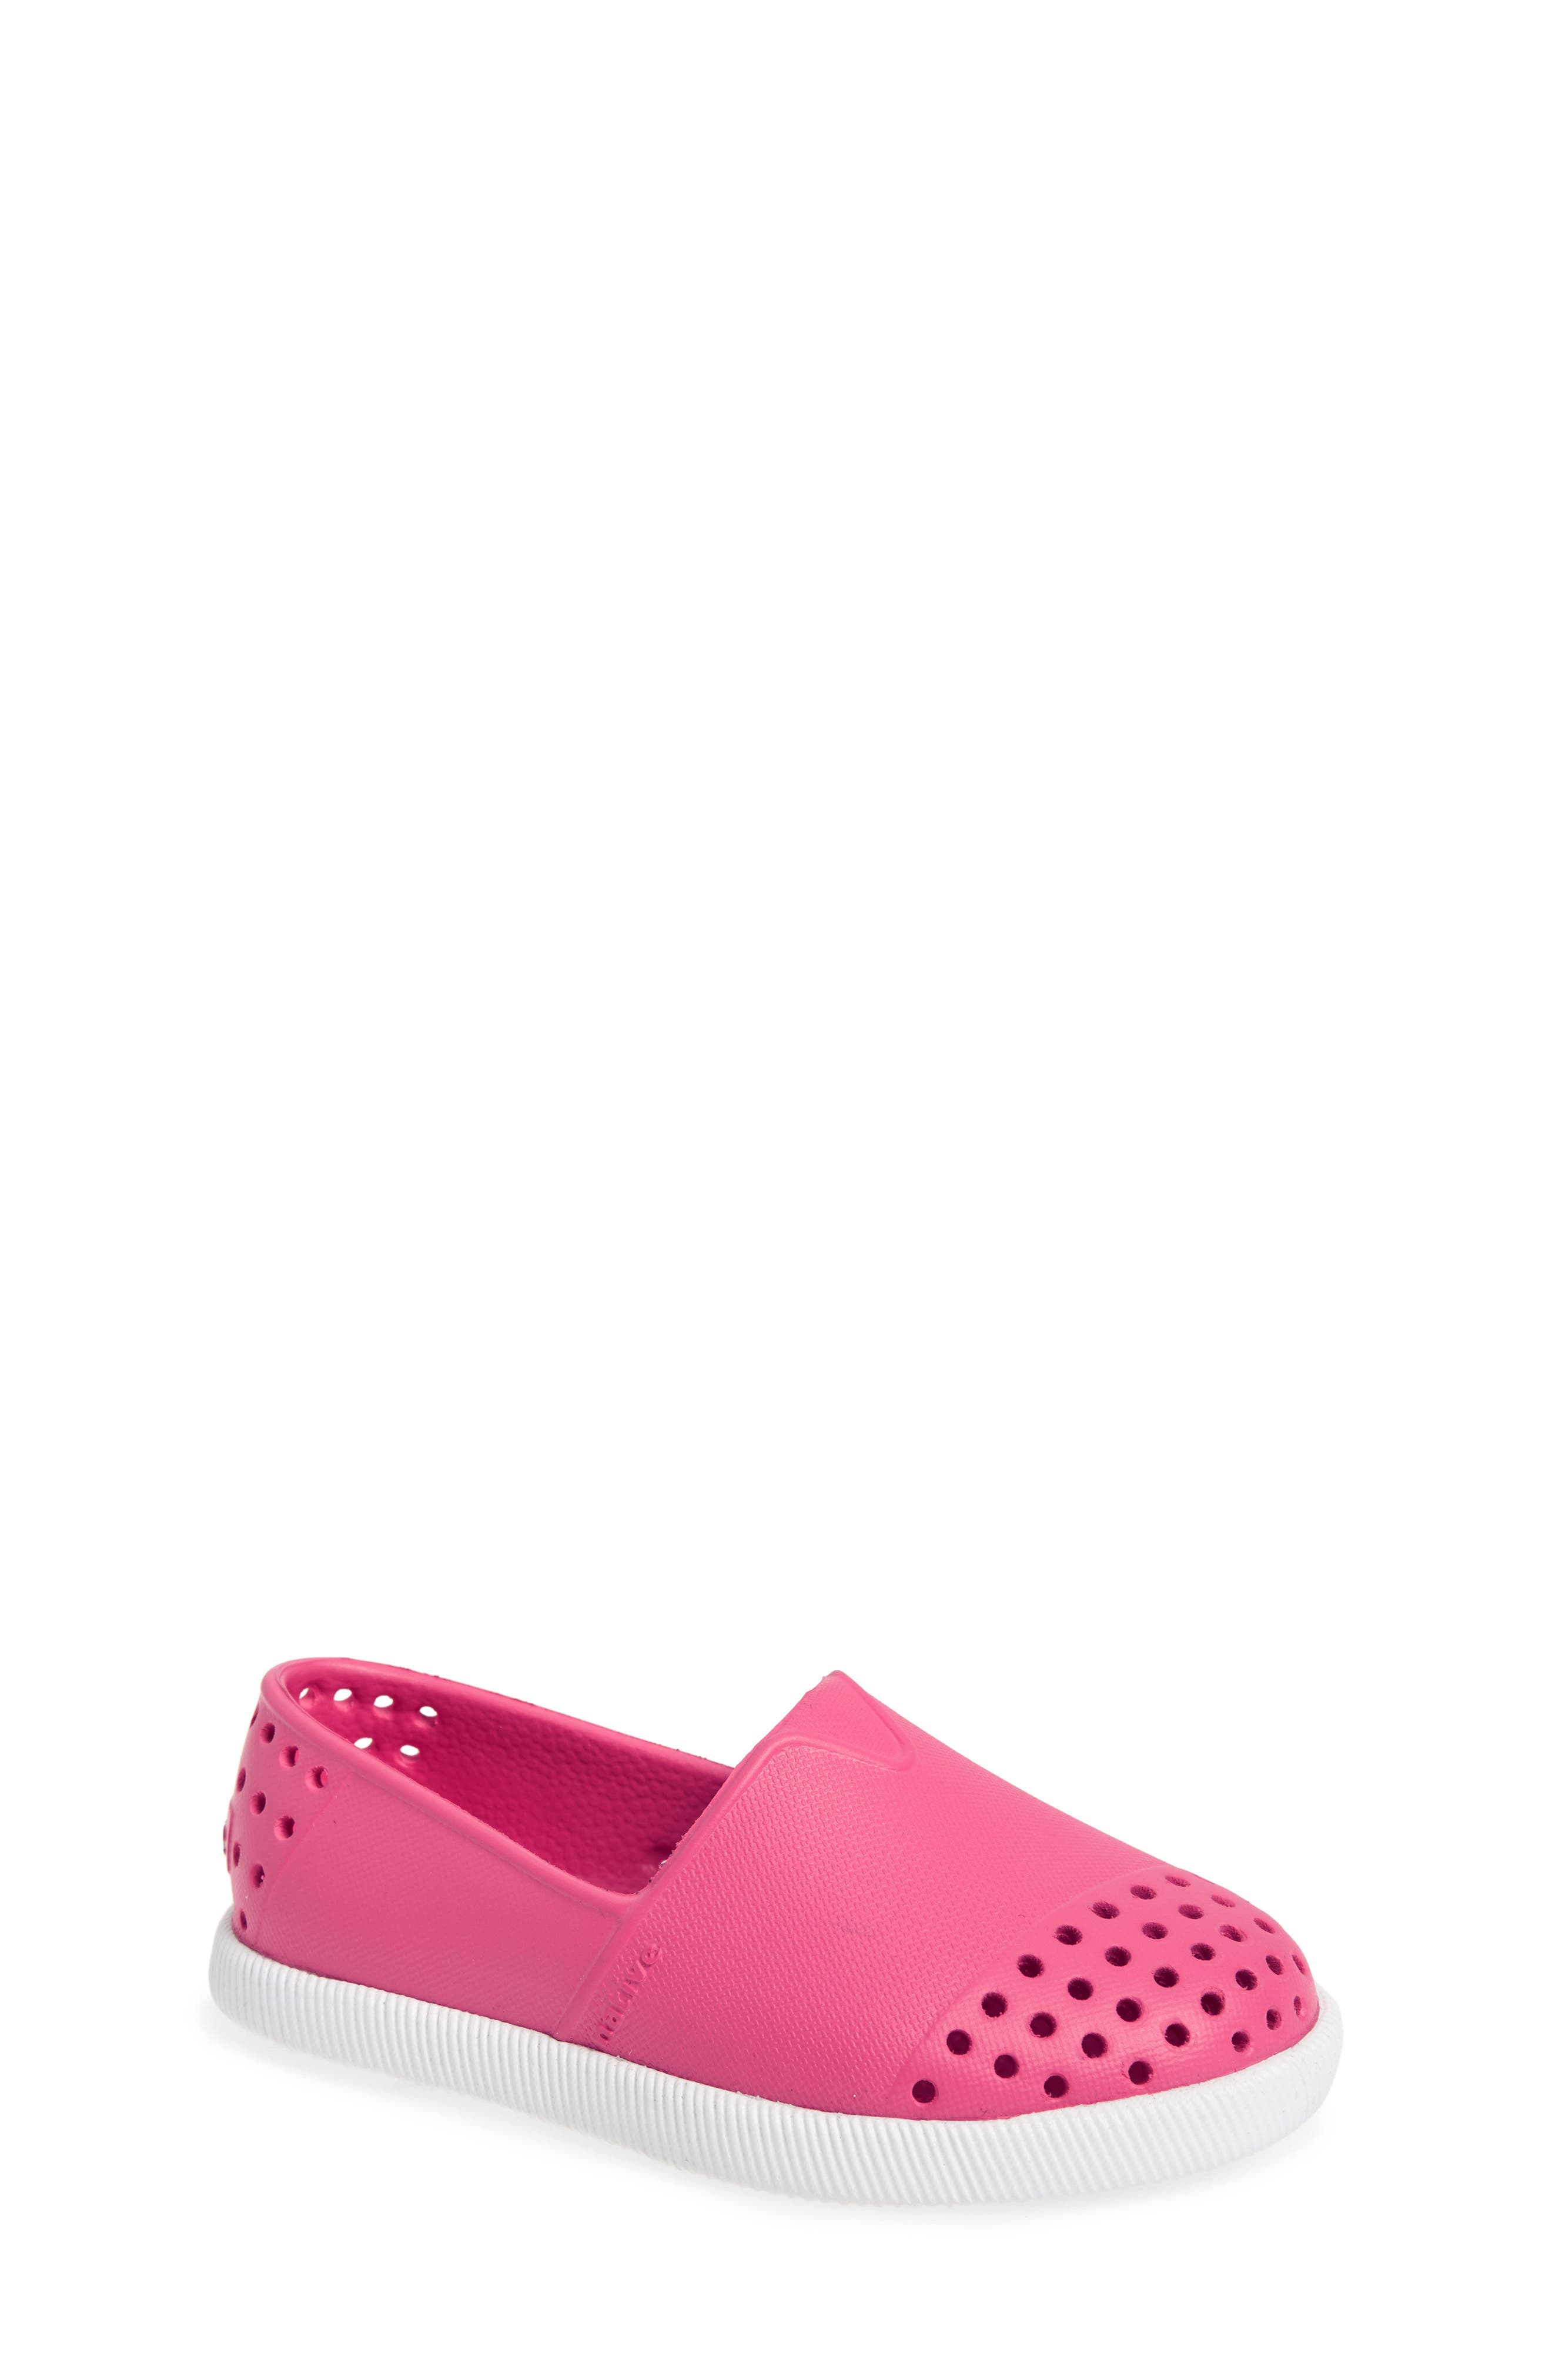 Verona Perforated Water Friendly Slip-On,                         Main,                         color, Hollywood Pink/ Shell White